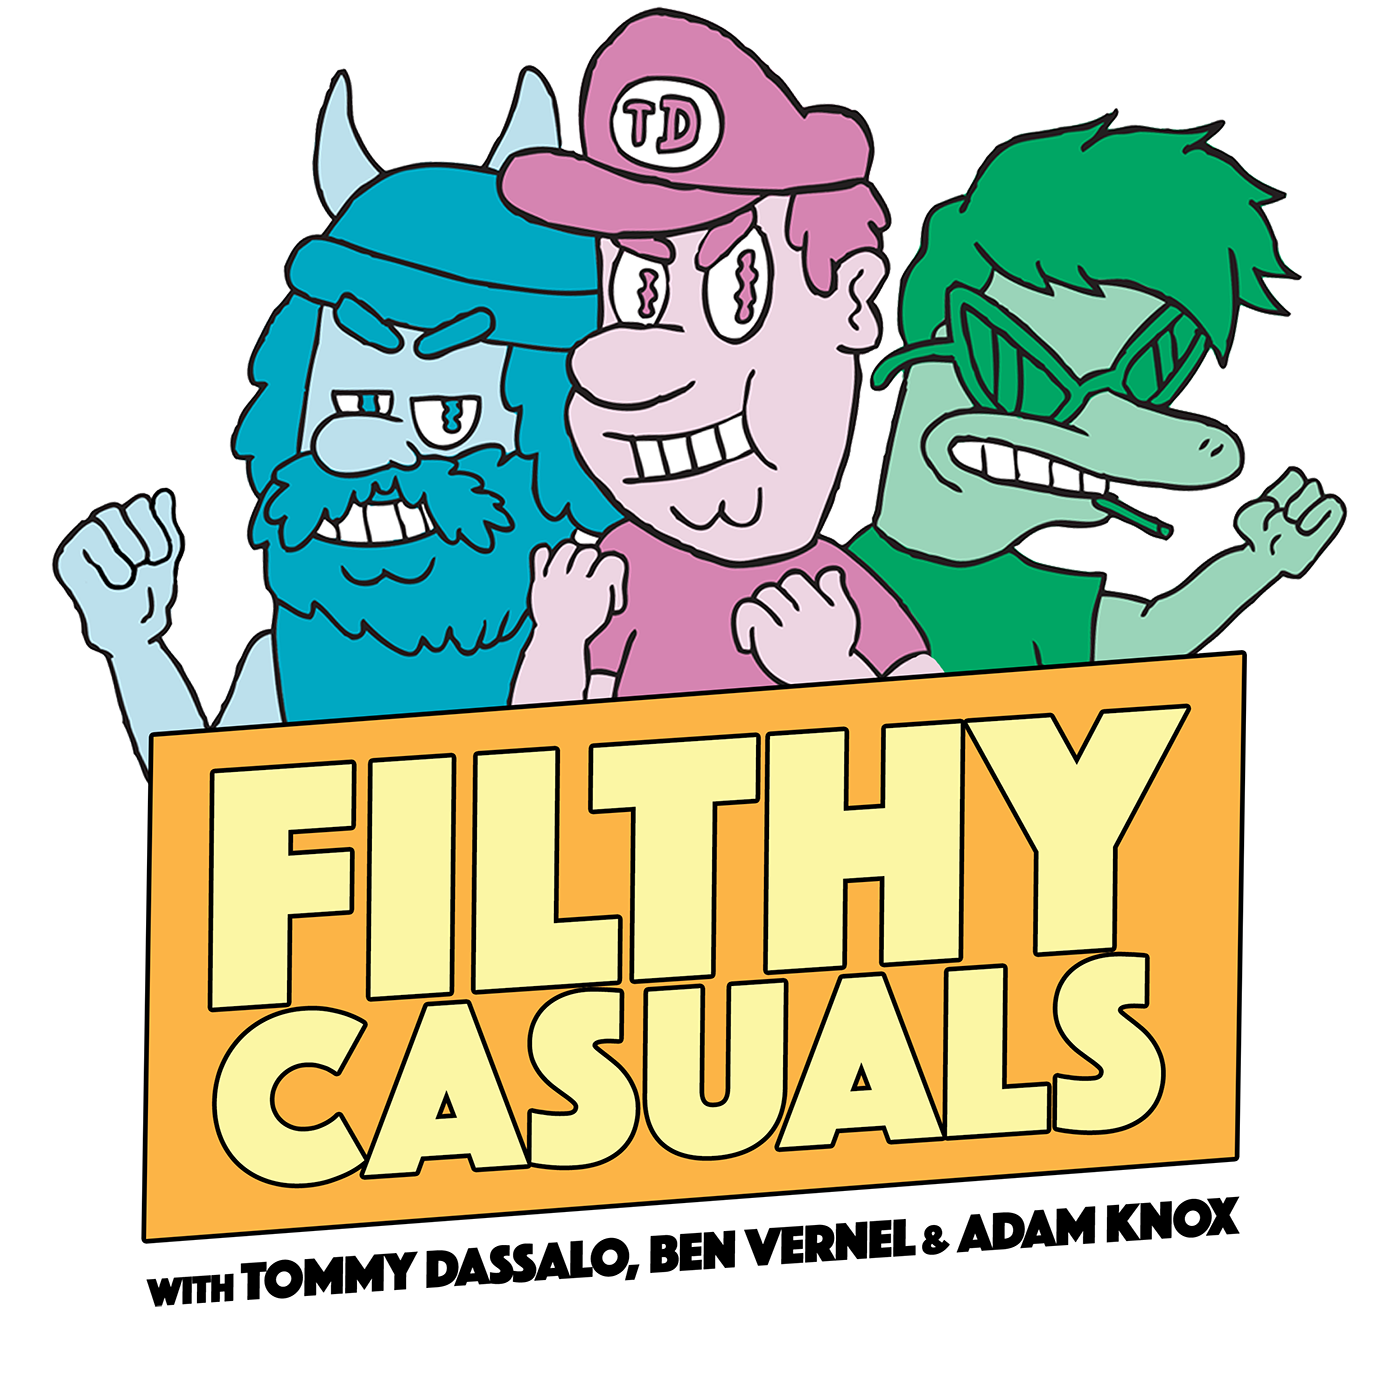 filthy casuals with tommy dassalo ben vernel and adam knox by tommy GTA V PC filthy casuals with tommy dassalo ben vernel and adam knox by tommy dassalo ben vernel and adam knox on apple podcasts